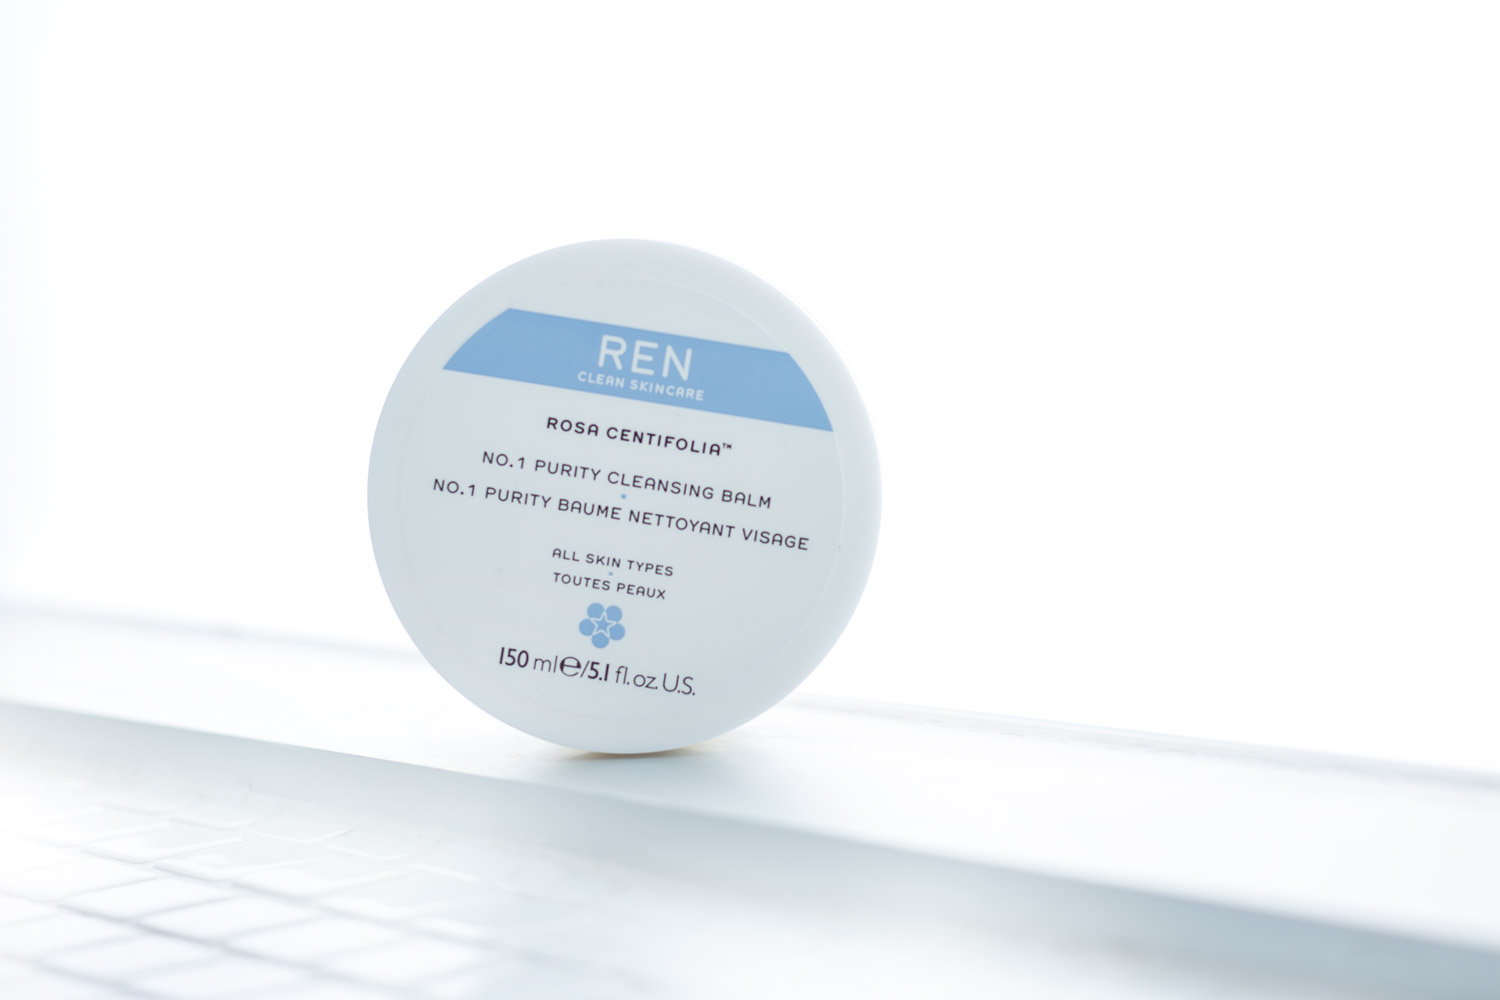 REN SKINCARE'S ROSA CENTIFOLIA  NUMBER 1 PURITY CLEANSING BALM